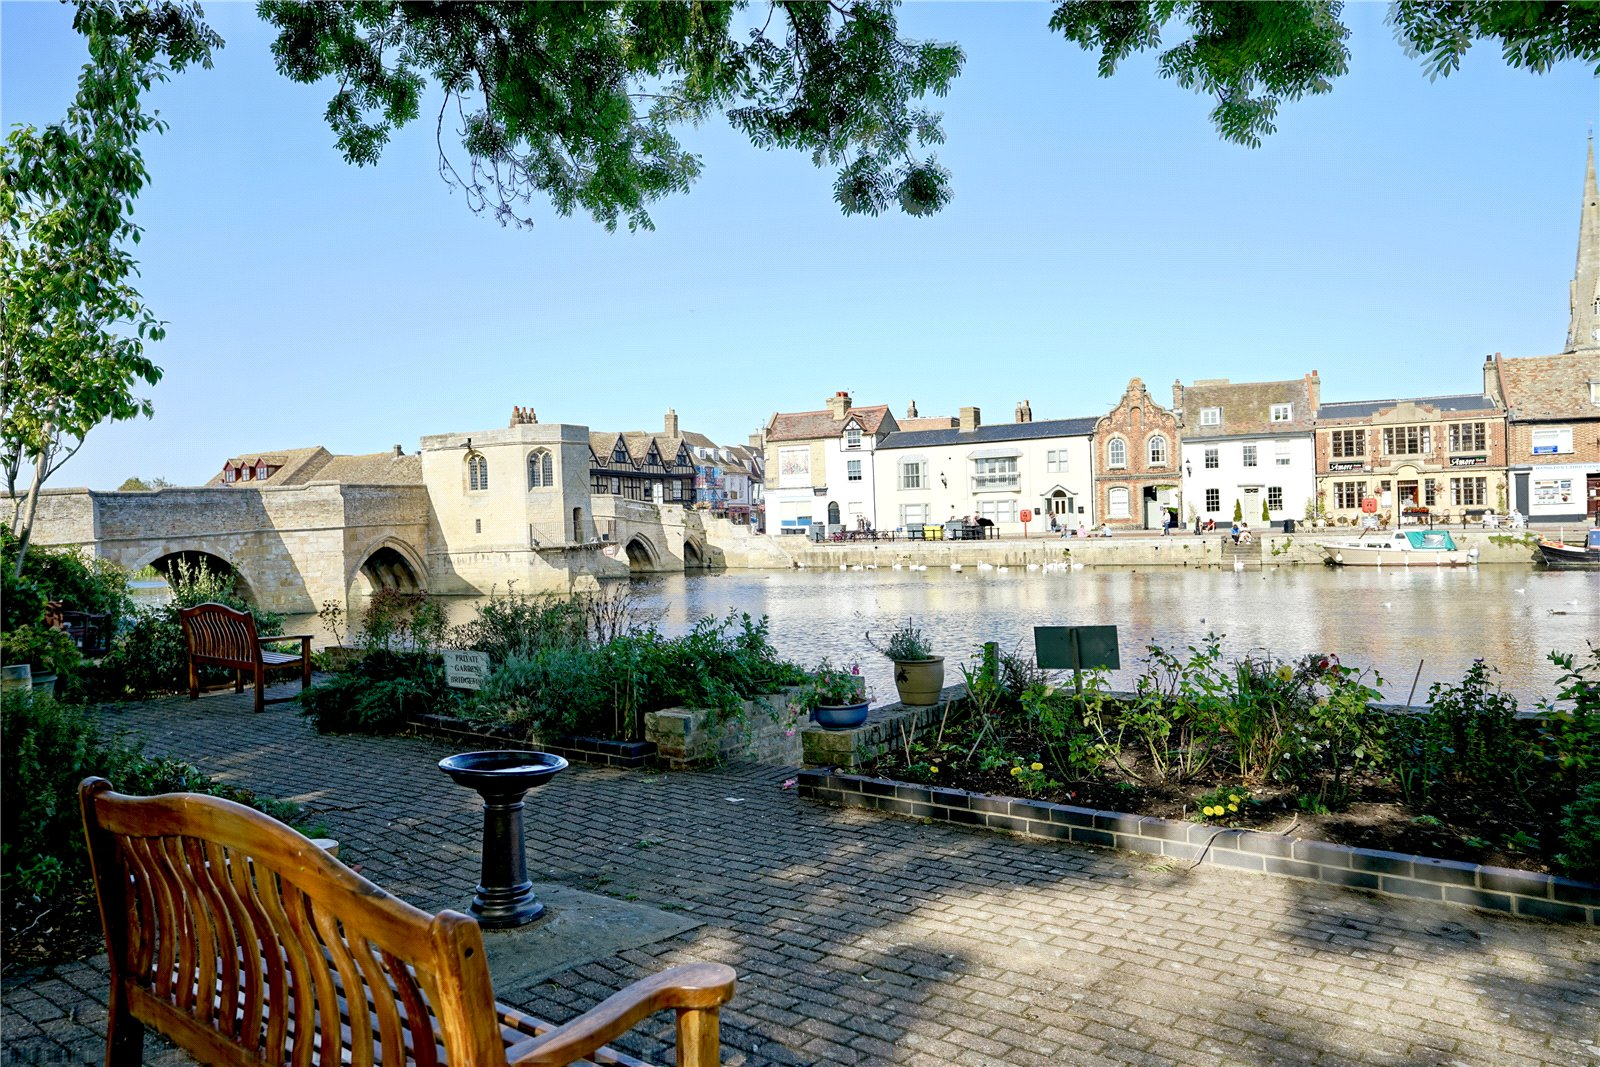 1 bed apartment for sale in St. Ives, PE27 5EP, PE27